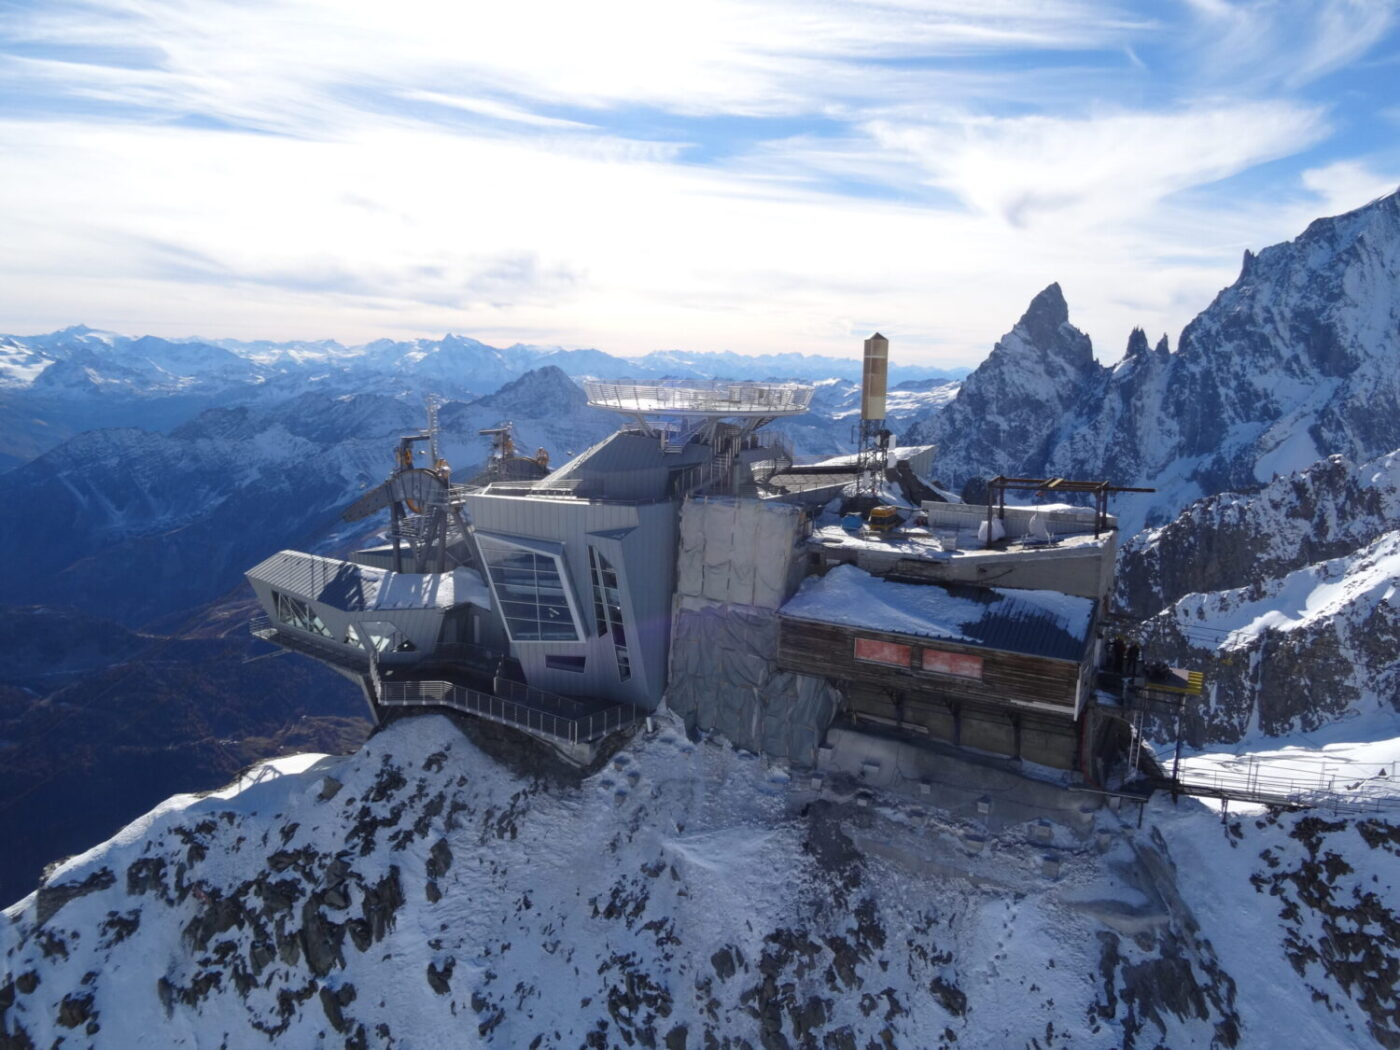 Skyway Monte Bianco. Photo: Skyway Monte Bianco- Courmayeur Mont Blanc. Skyway Monte Bianco. Courmayeur Mont Blanc announces new sustainability strategy to 'save the glacier'